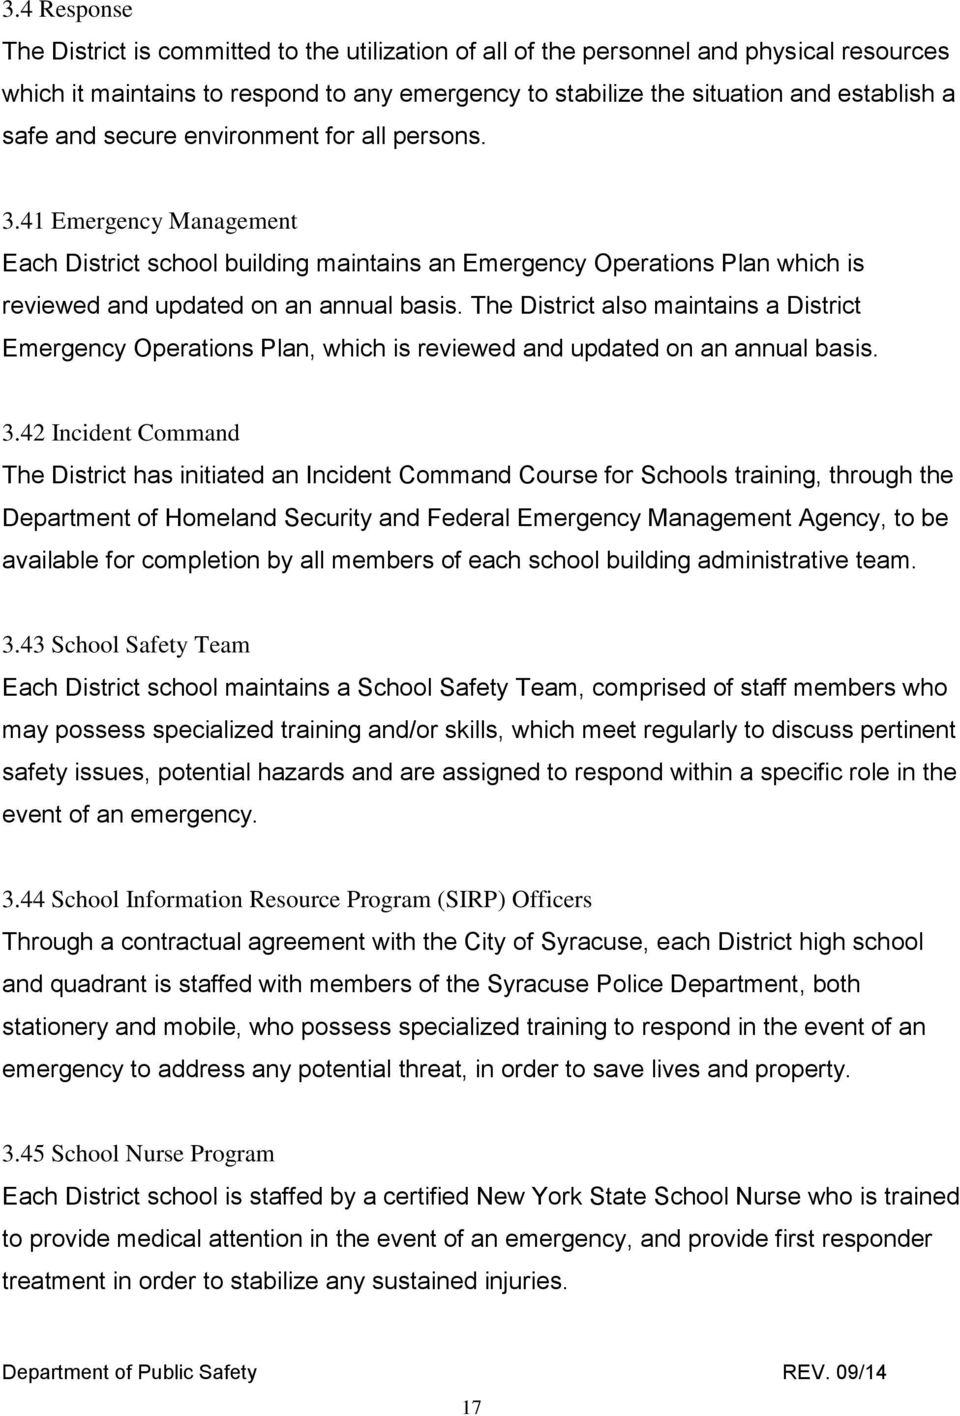 The District also maintains a District Emergency Operations Plan, which is reviewed and updated on an annual basis. 3.